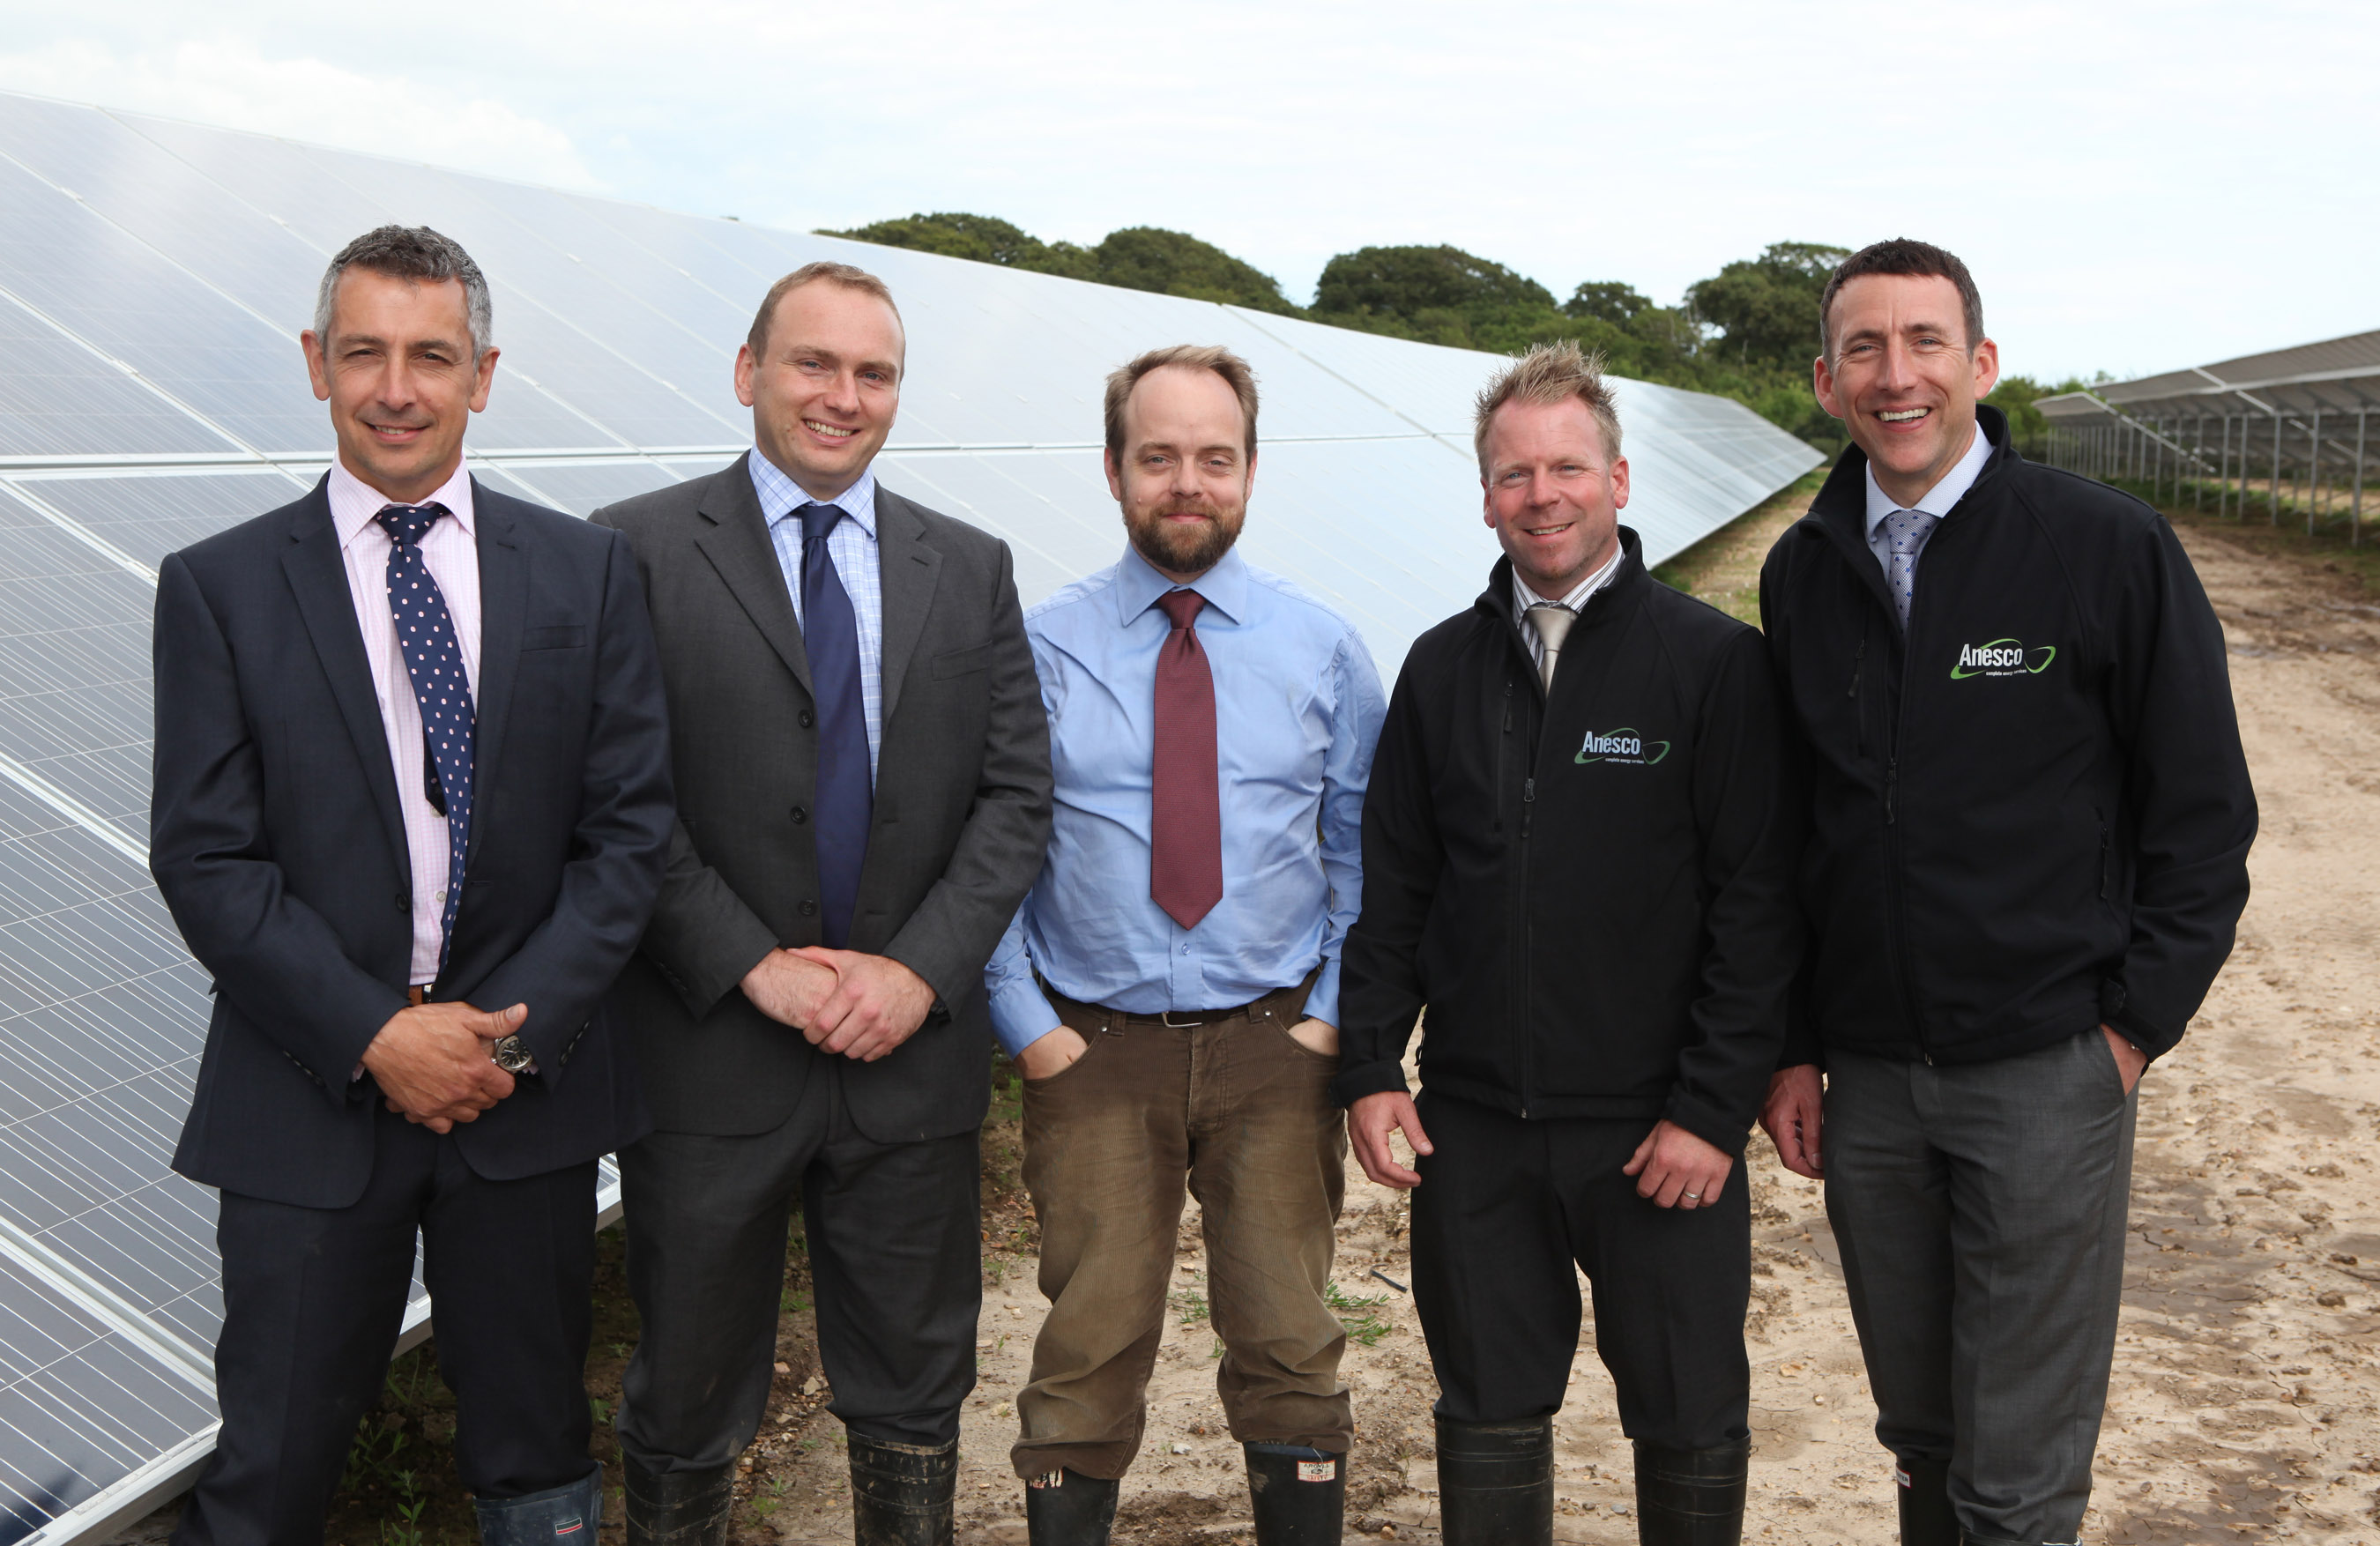 The Cadland Estate solar farm team l-r Steve Helliwell Benn Teasdale and Peter Verso from JPCS and Scott Hofgartner and Adrian Pike from Anesco